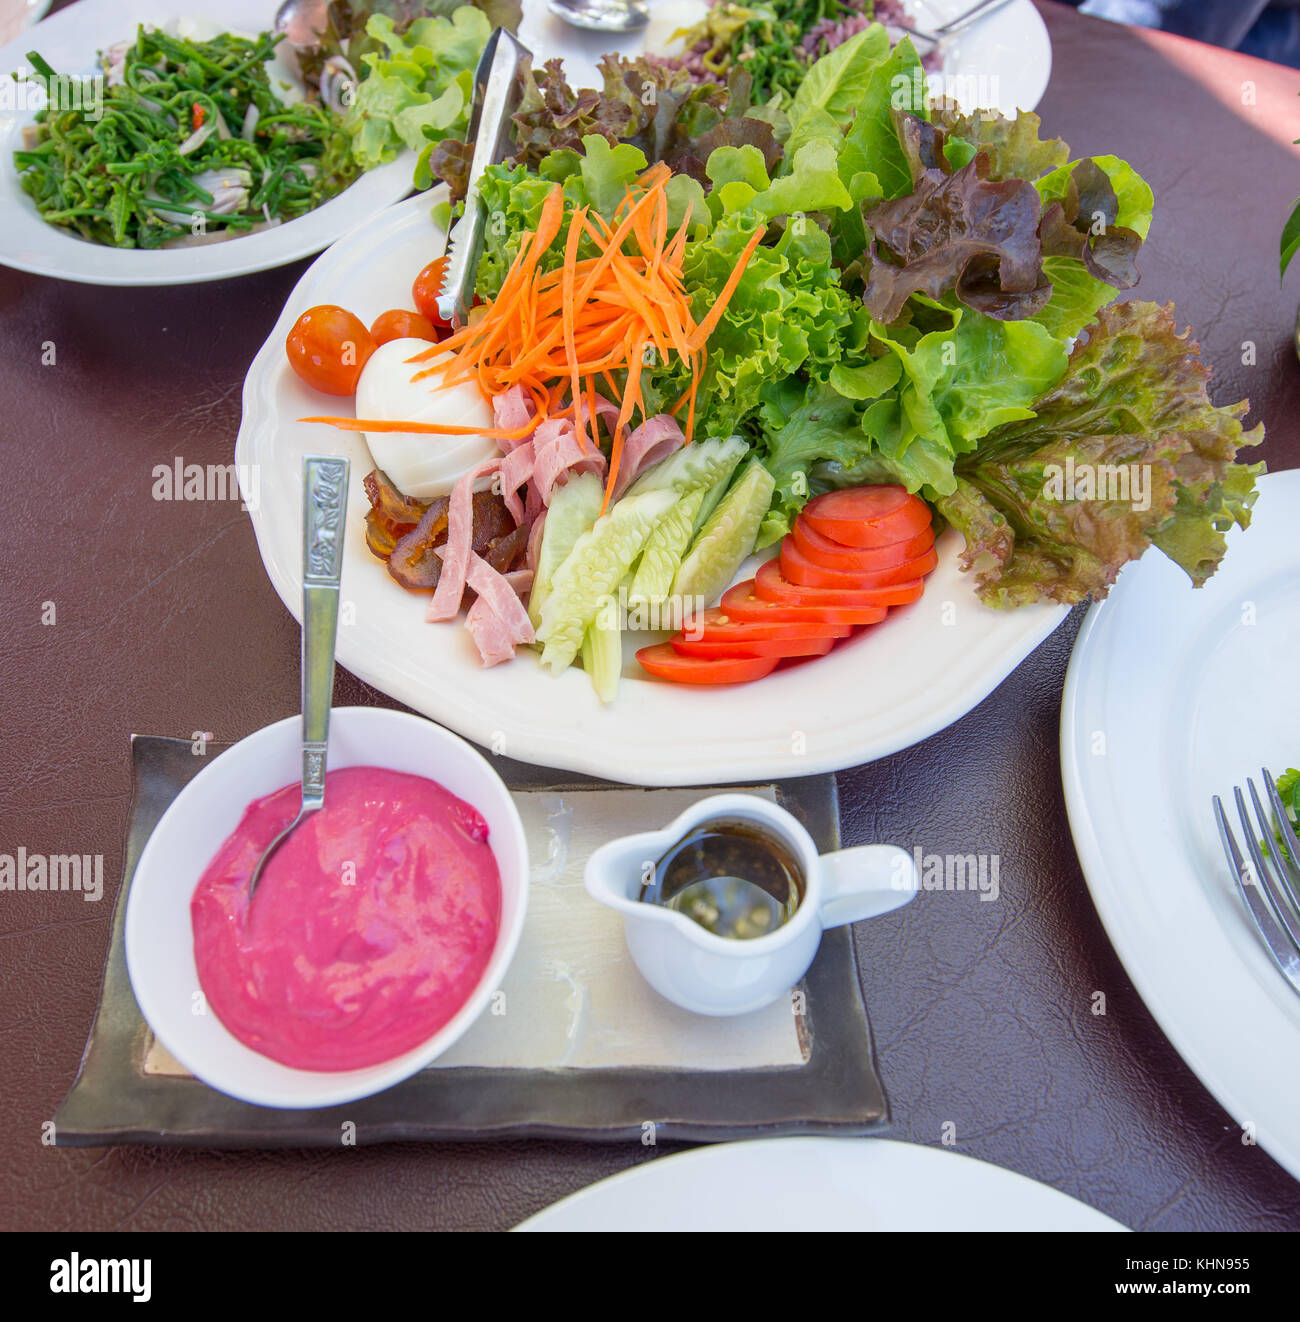 Egg Salad on a table with raspberry cream sauce, Thailand style - Stock Image